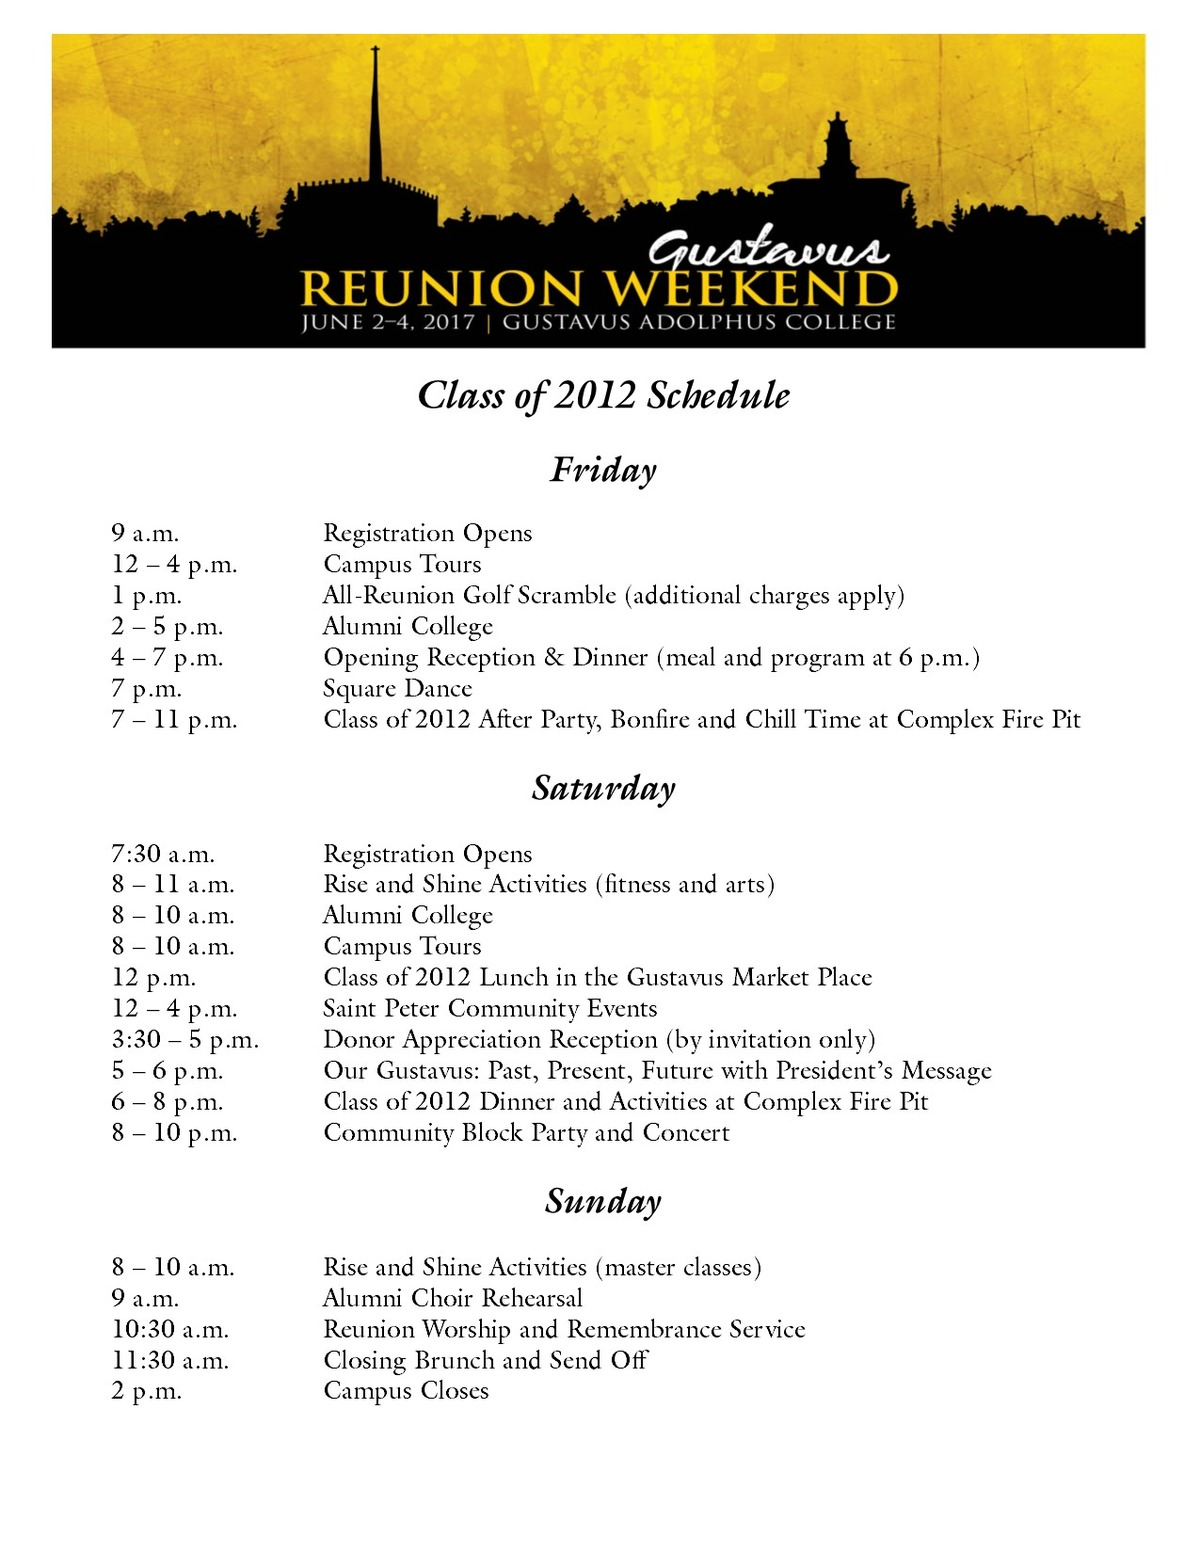 Class of 2012 Reunion Weekend Schedule